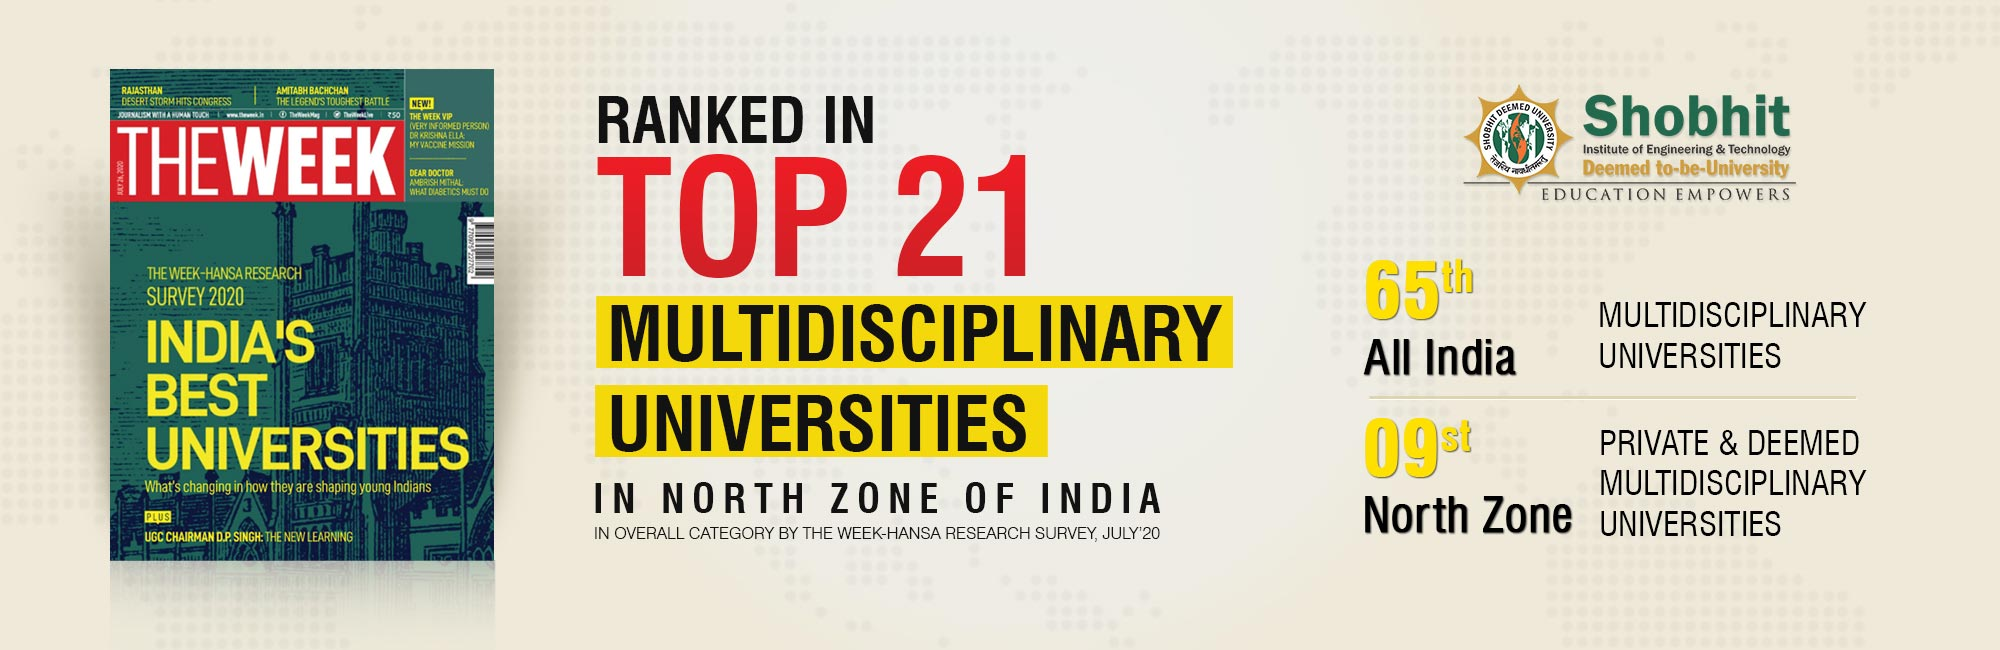 Ranked in Top 21 Multidisciplinary Universities in north zone of india